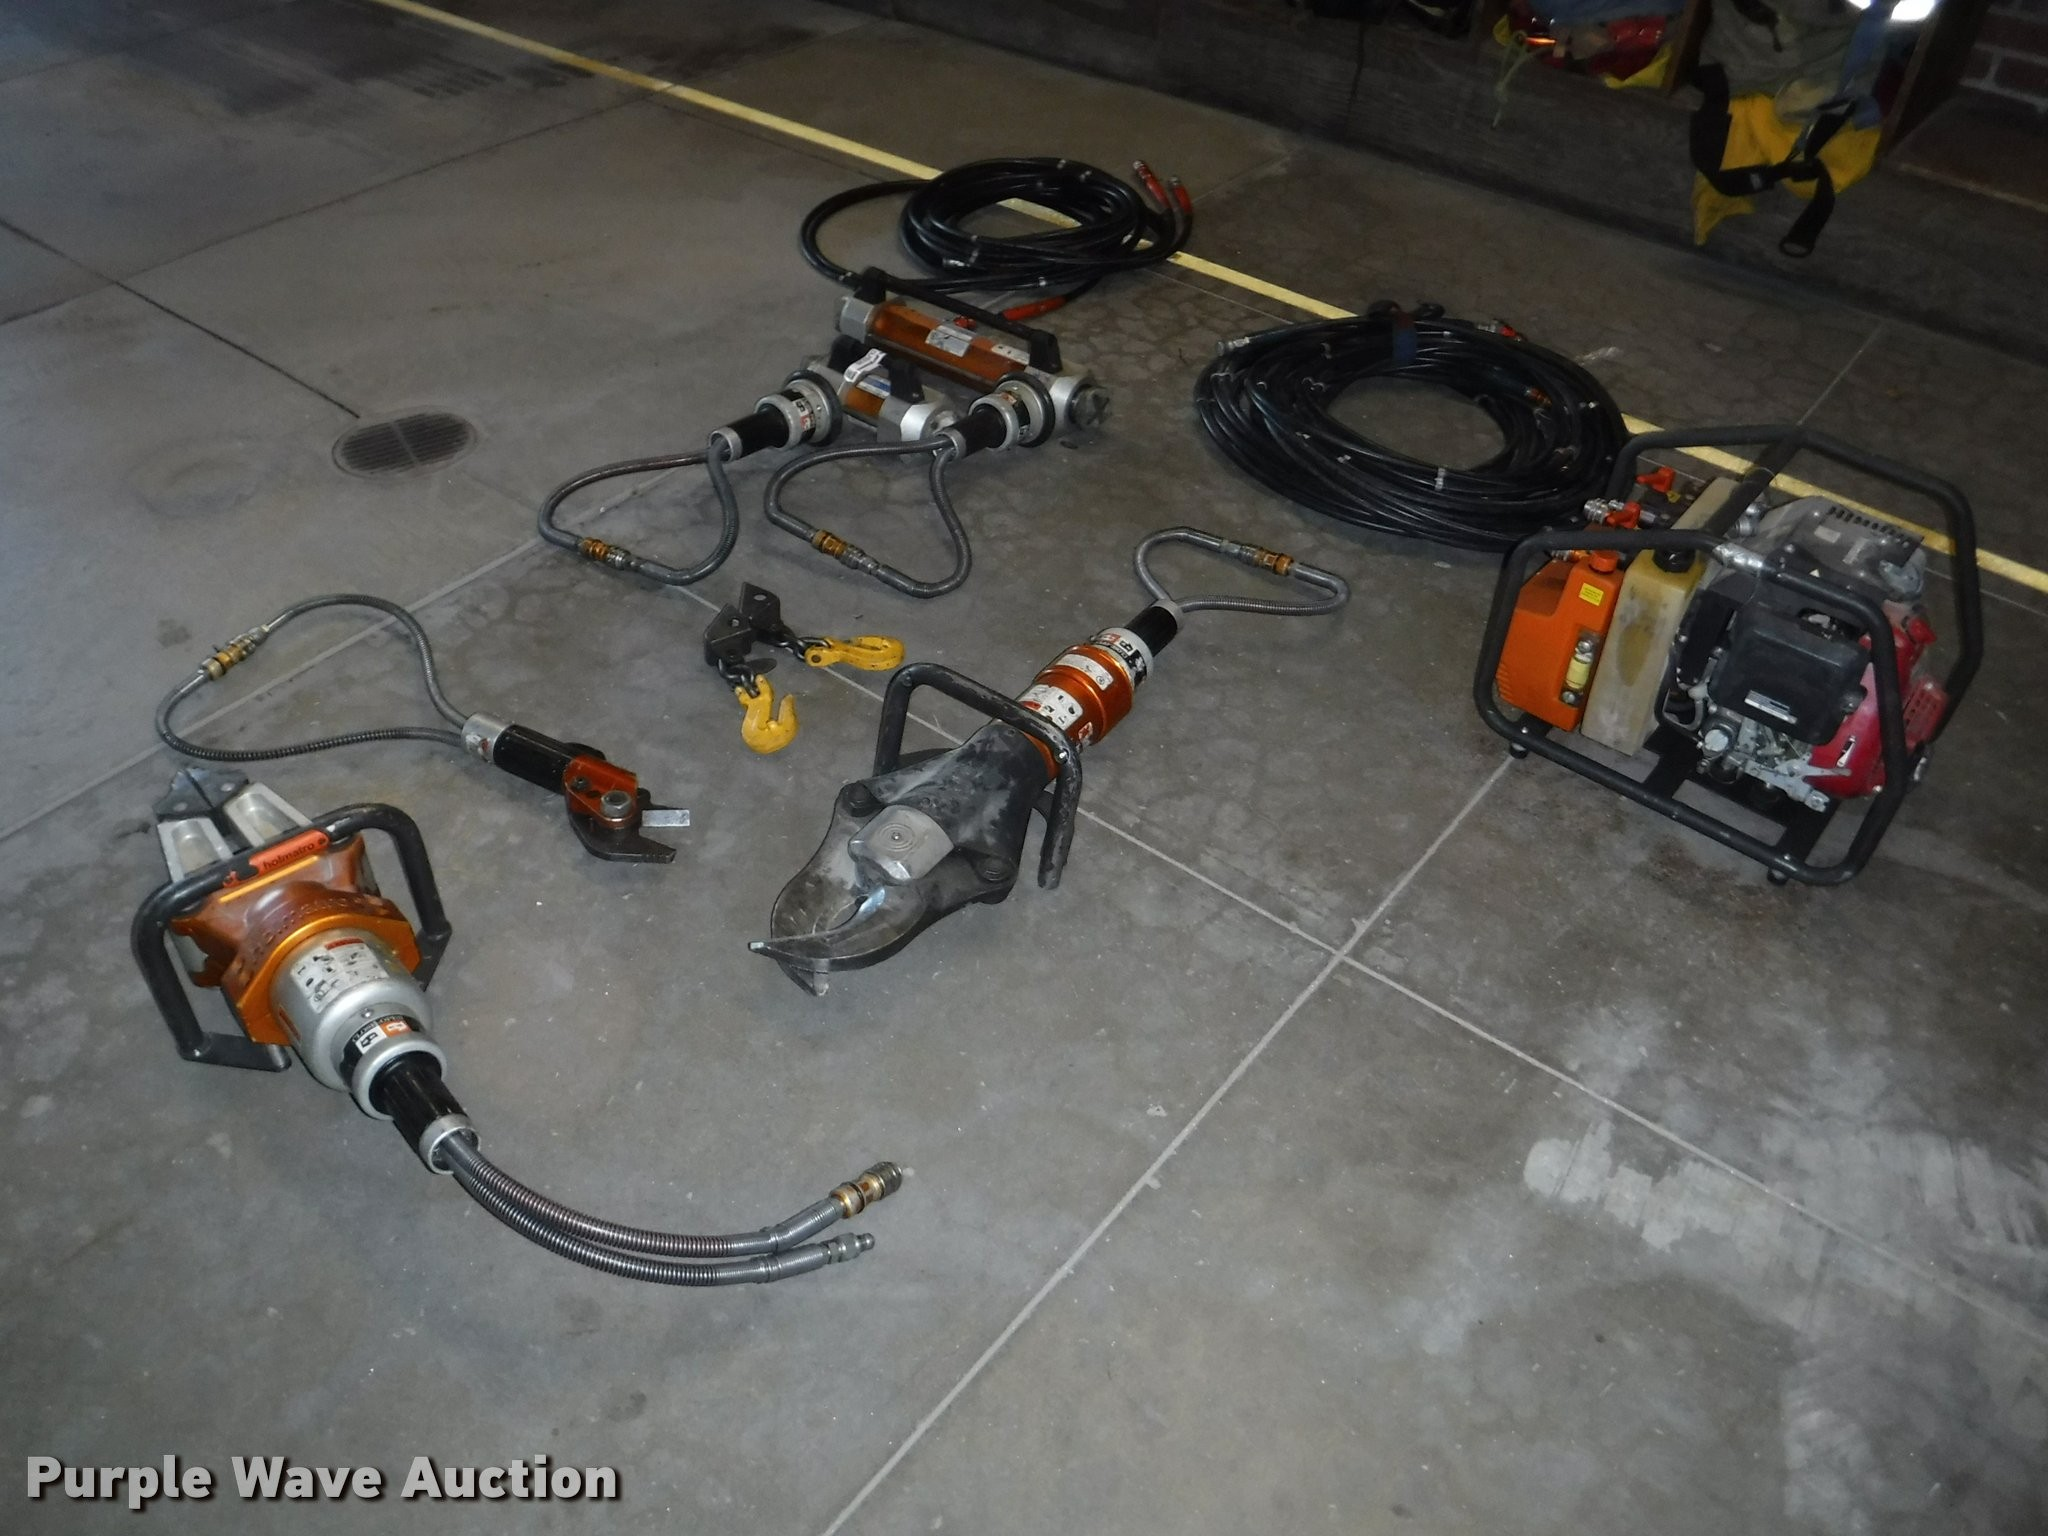 Construction Of the Jaws Of Life Holmatro Jaws Of Life Rescue System In Emporia Ks Item Dj9229 sold Of Construction Of the Jaws Of Life